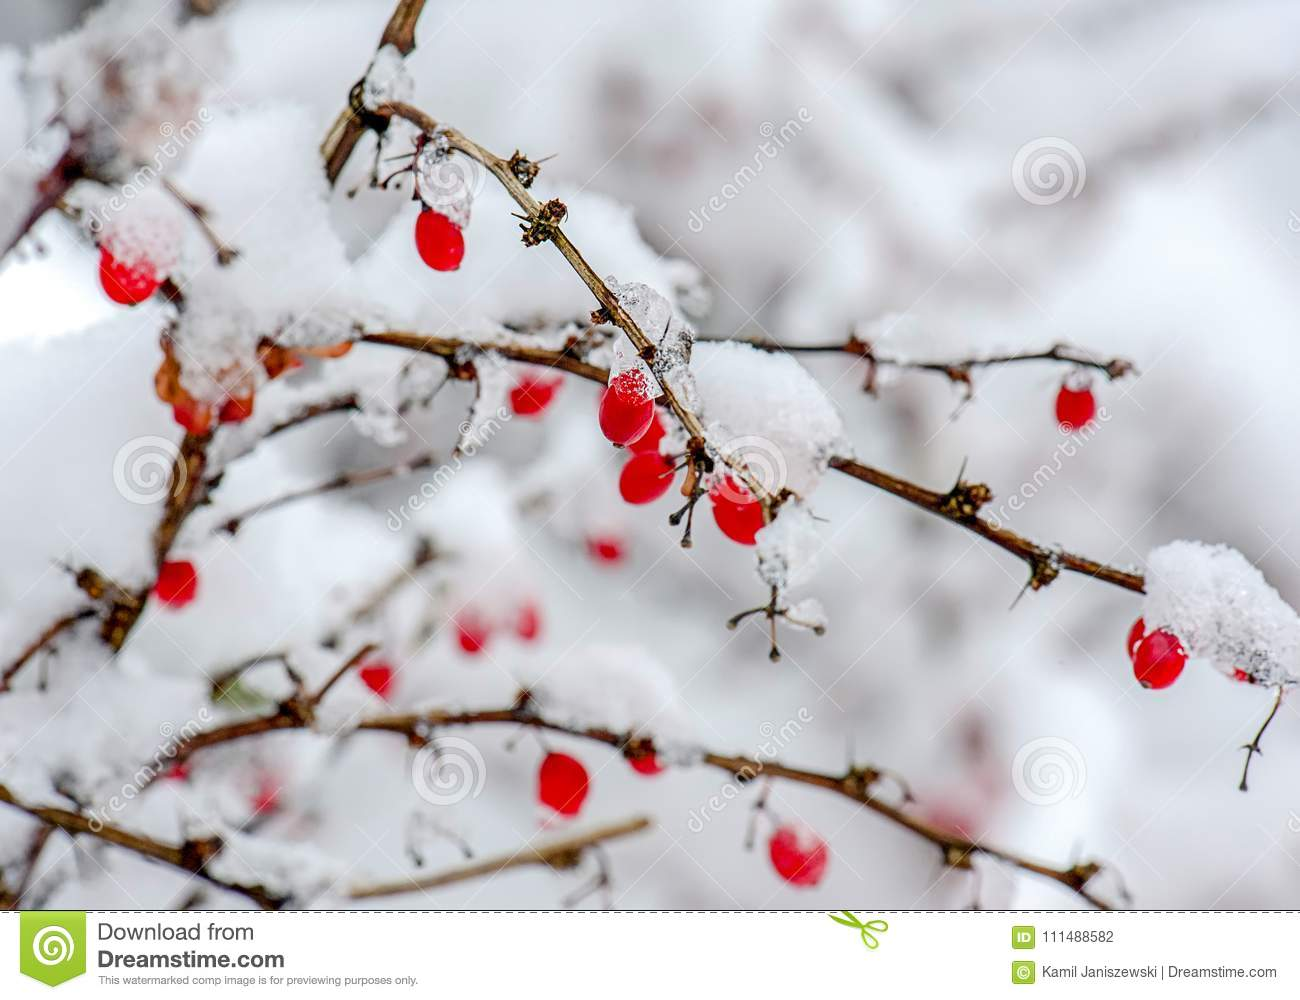 Frozen Red Berries Winter Wallpapers Quality